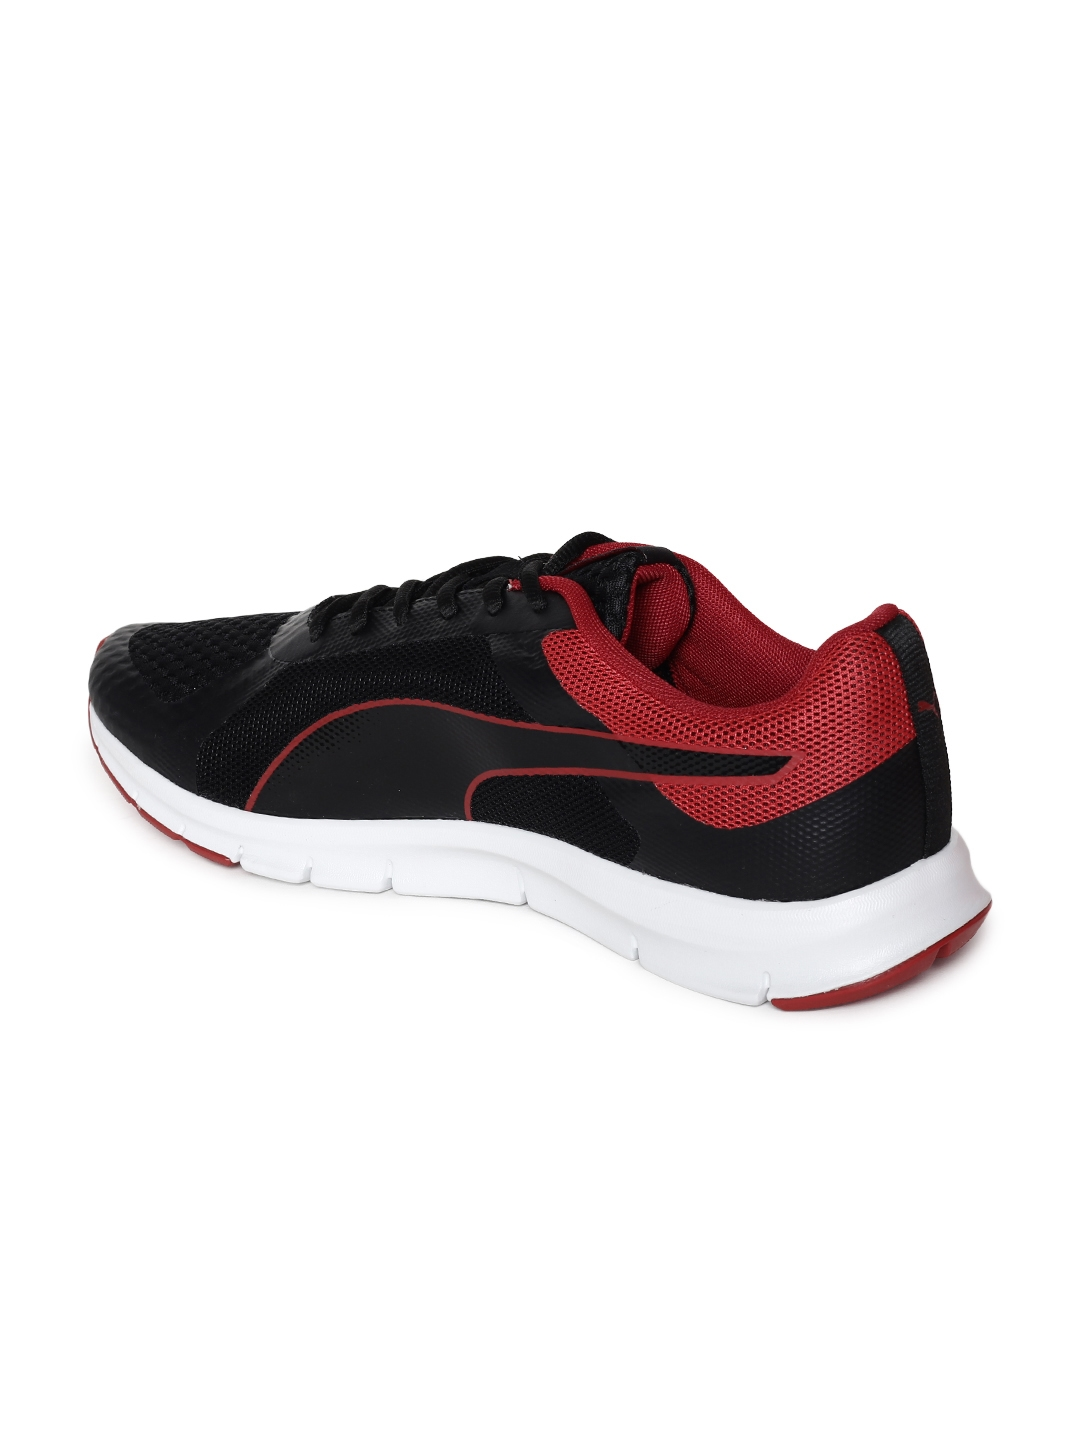 6762c1faa31d33 Buy Puma Men Black   Red Trackracer IDP Running Shoes - Sports Shoes ...